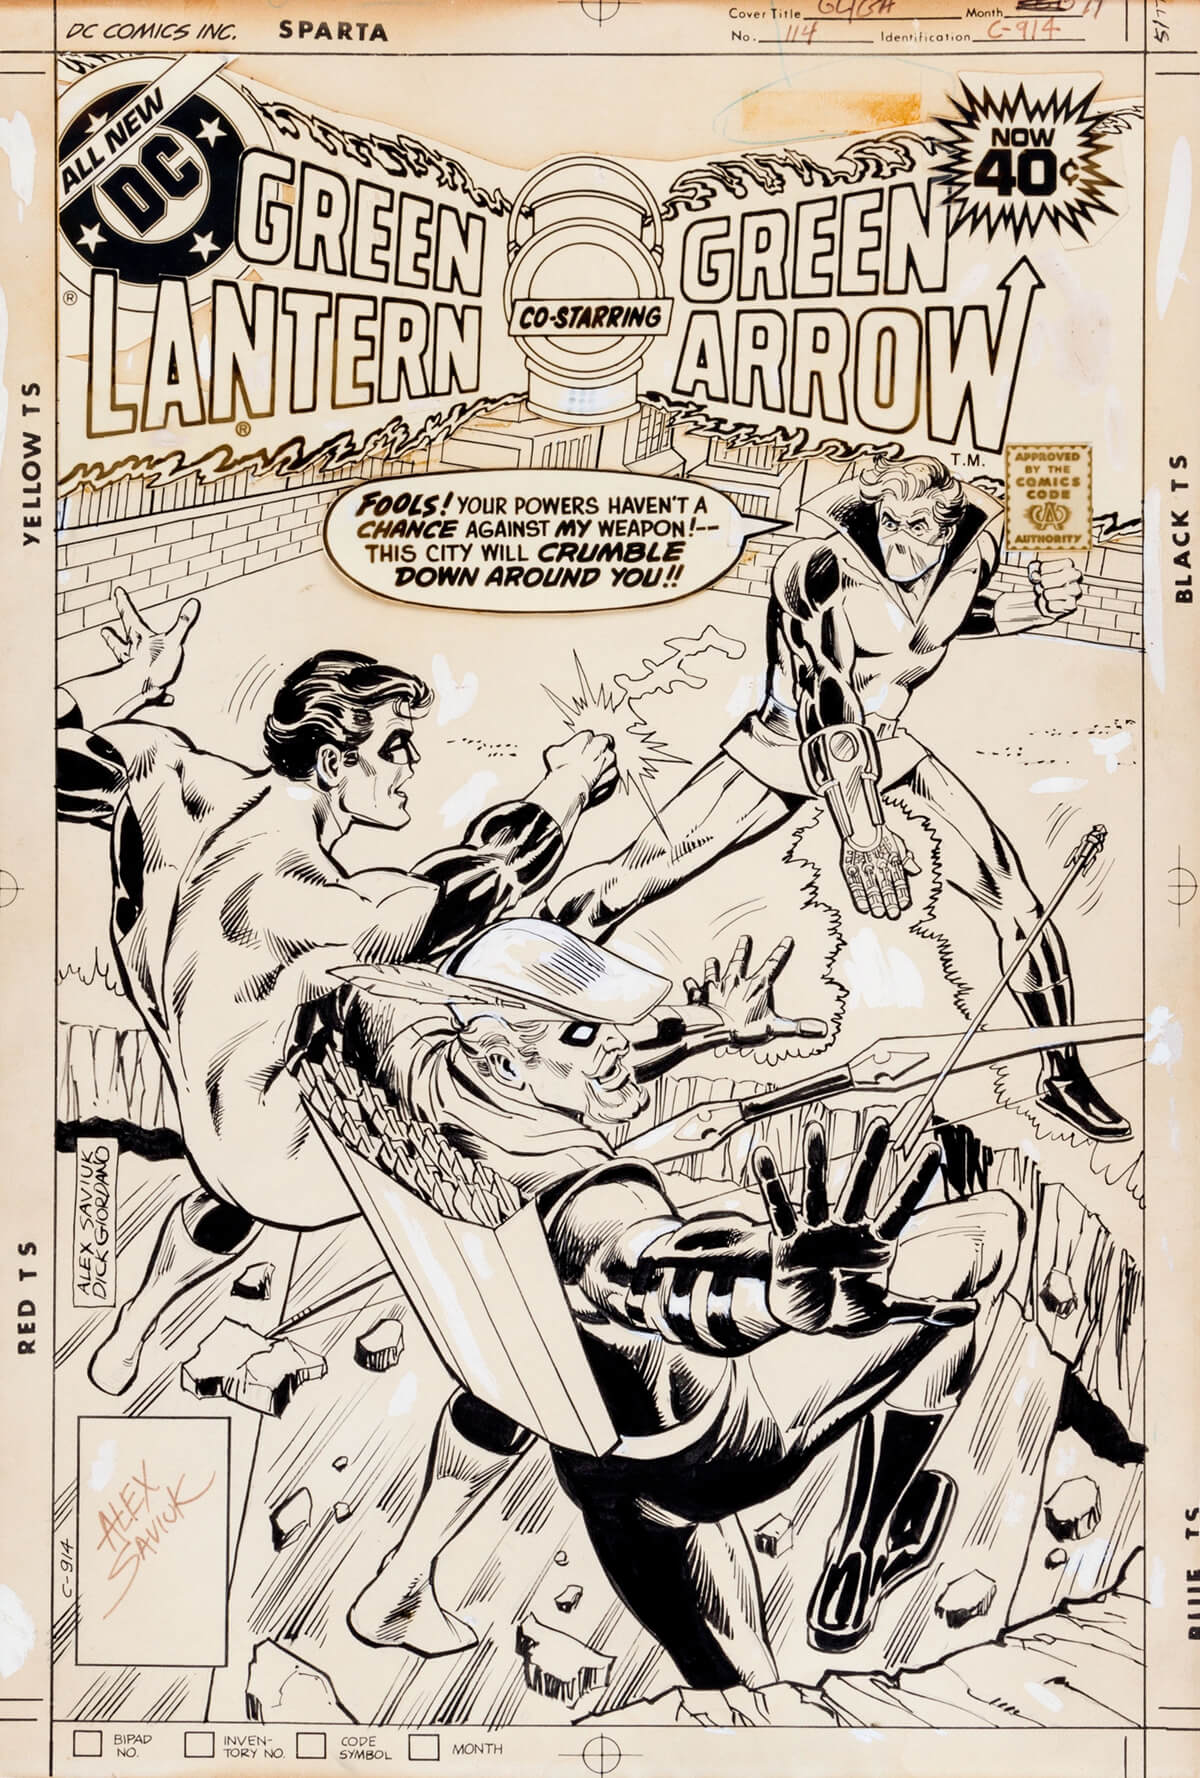 Green Lantern 114 Cover by Alex Saviuk and Dick Giordano